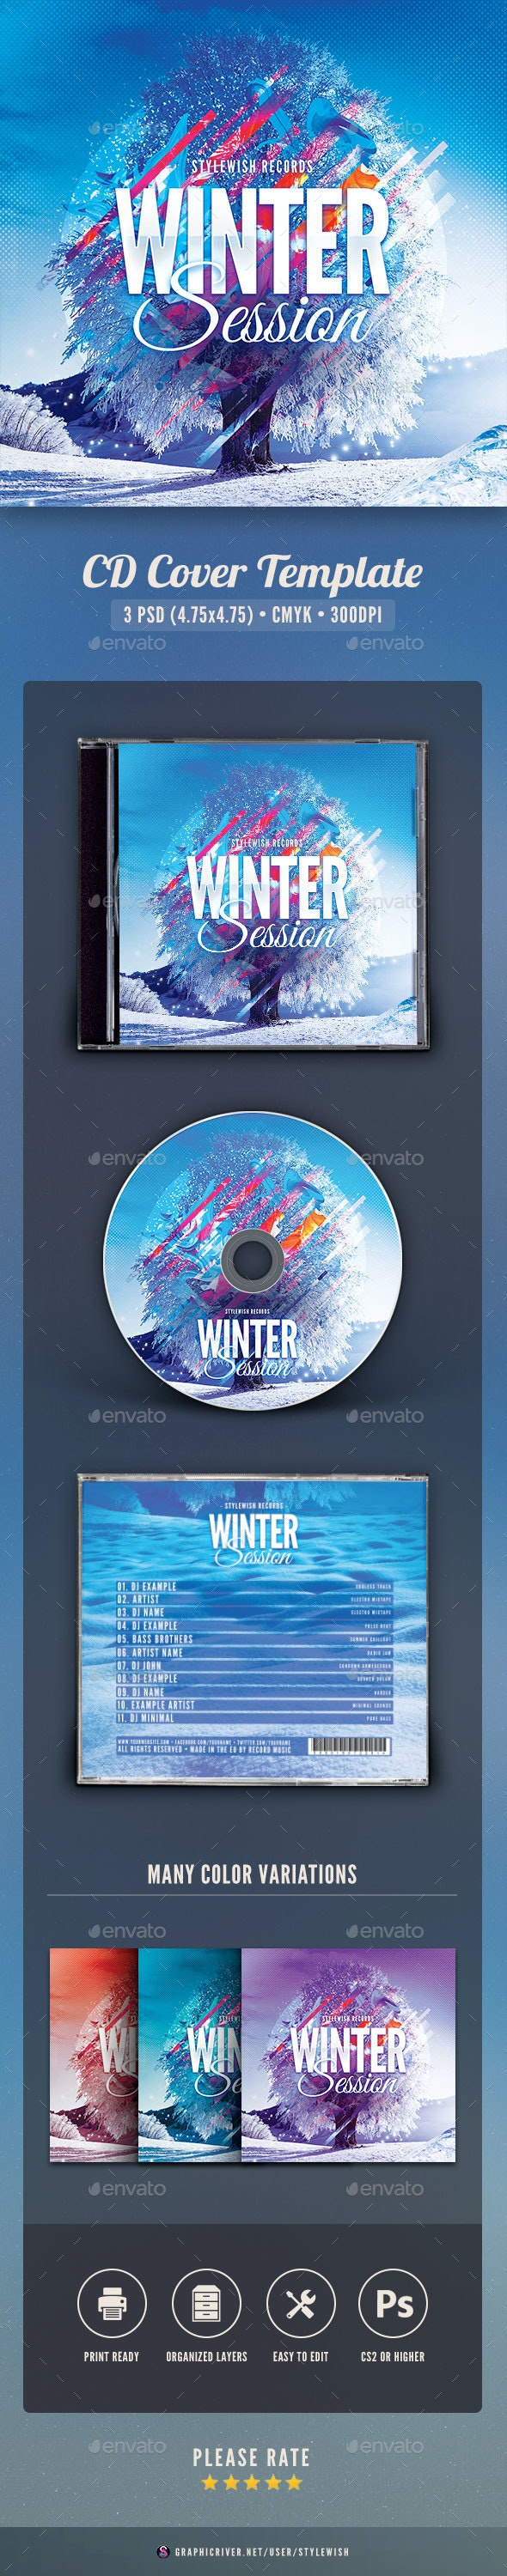 Winter Session CD Cover Artwork - CD & DVD Artwork Print Templates